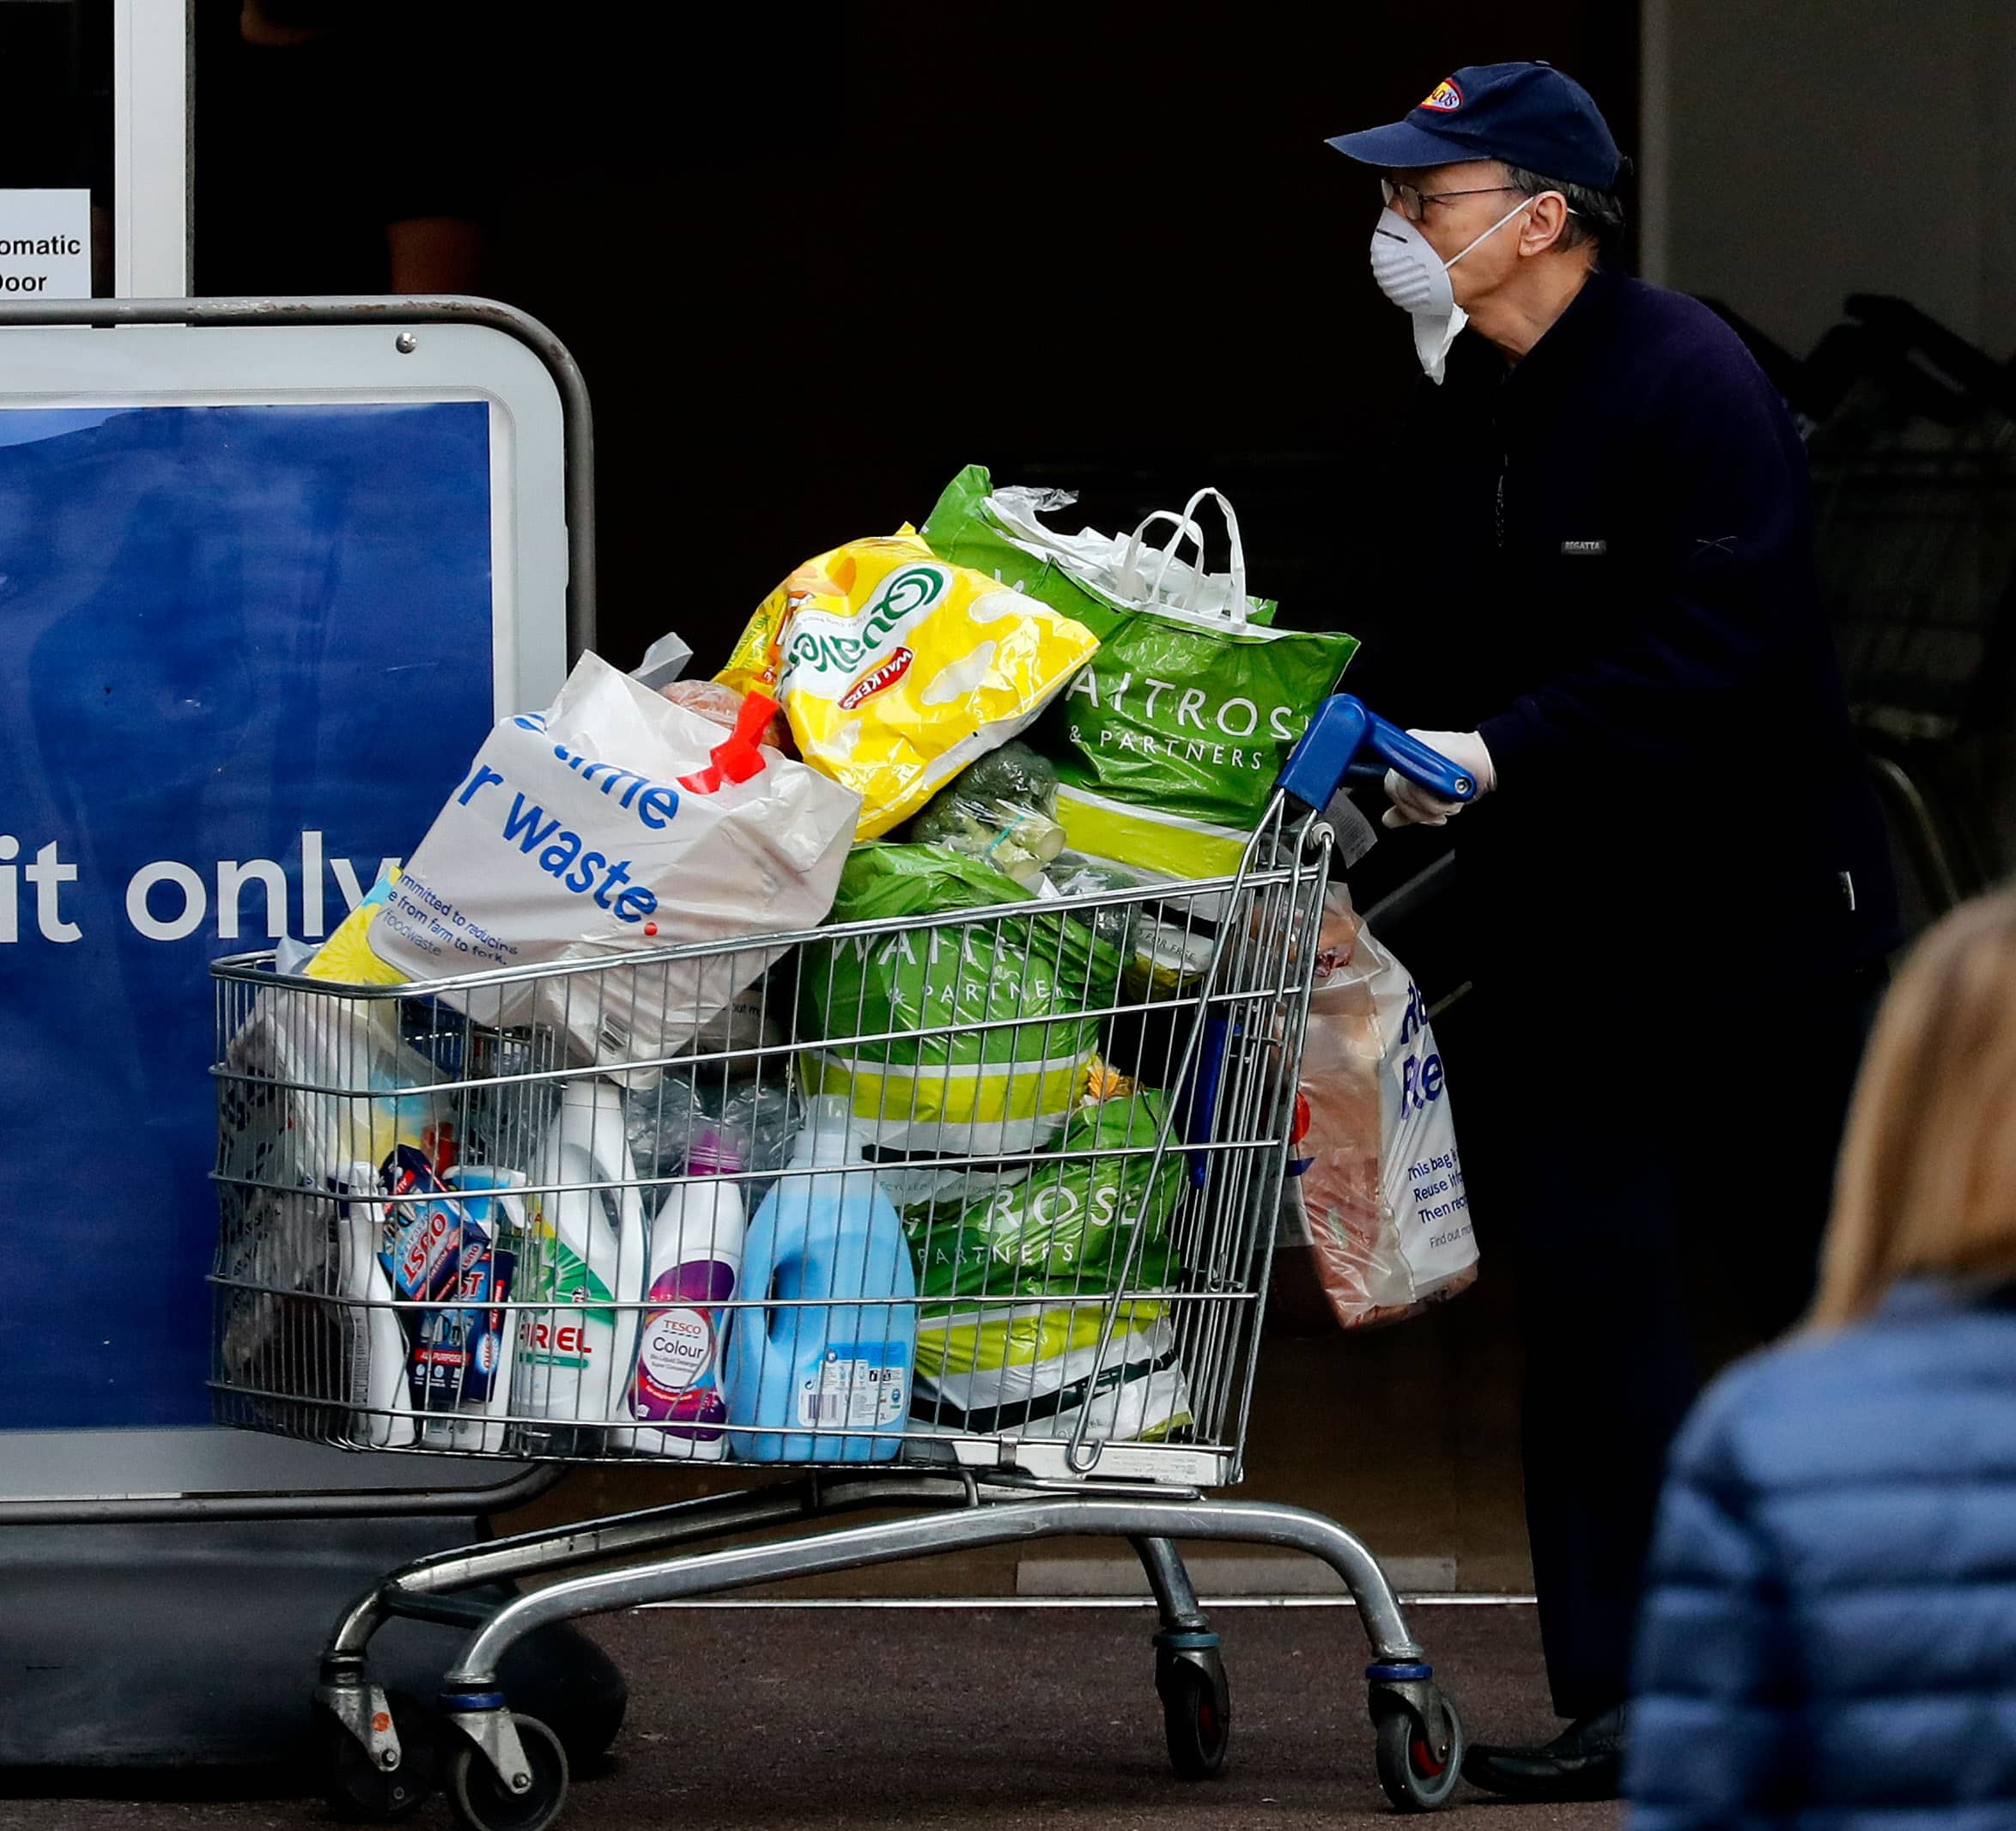 WORRY, HASTE, RETAIL THERAPY: WHAT HAVE WE BOUGHT AND WHY?